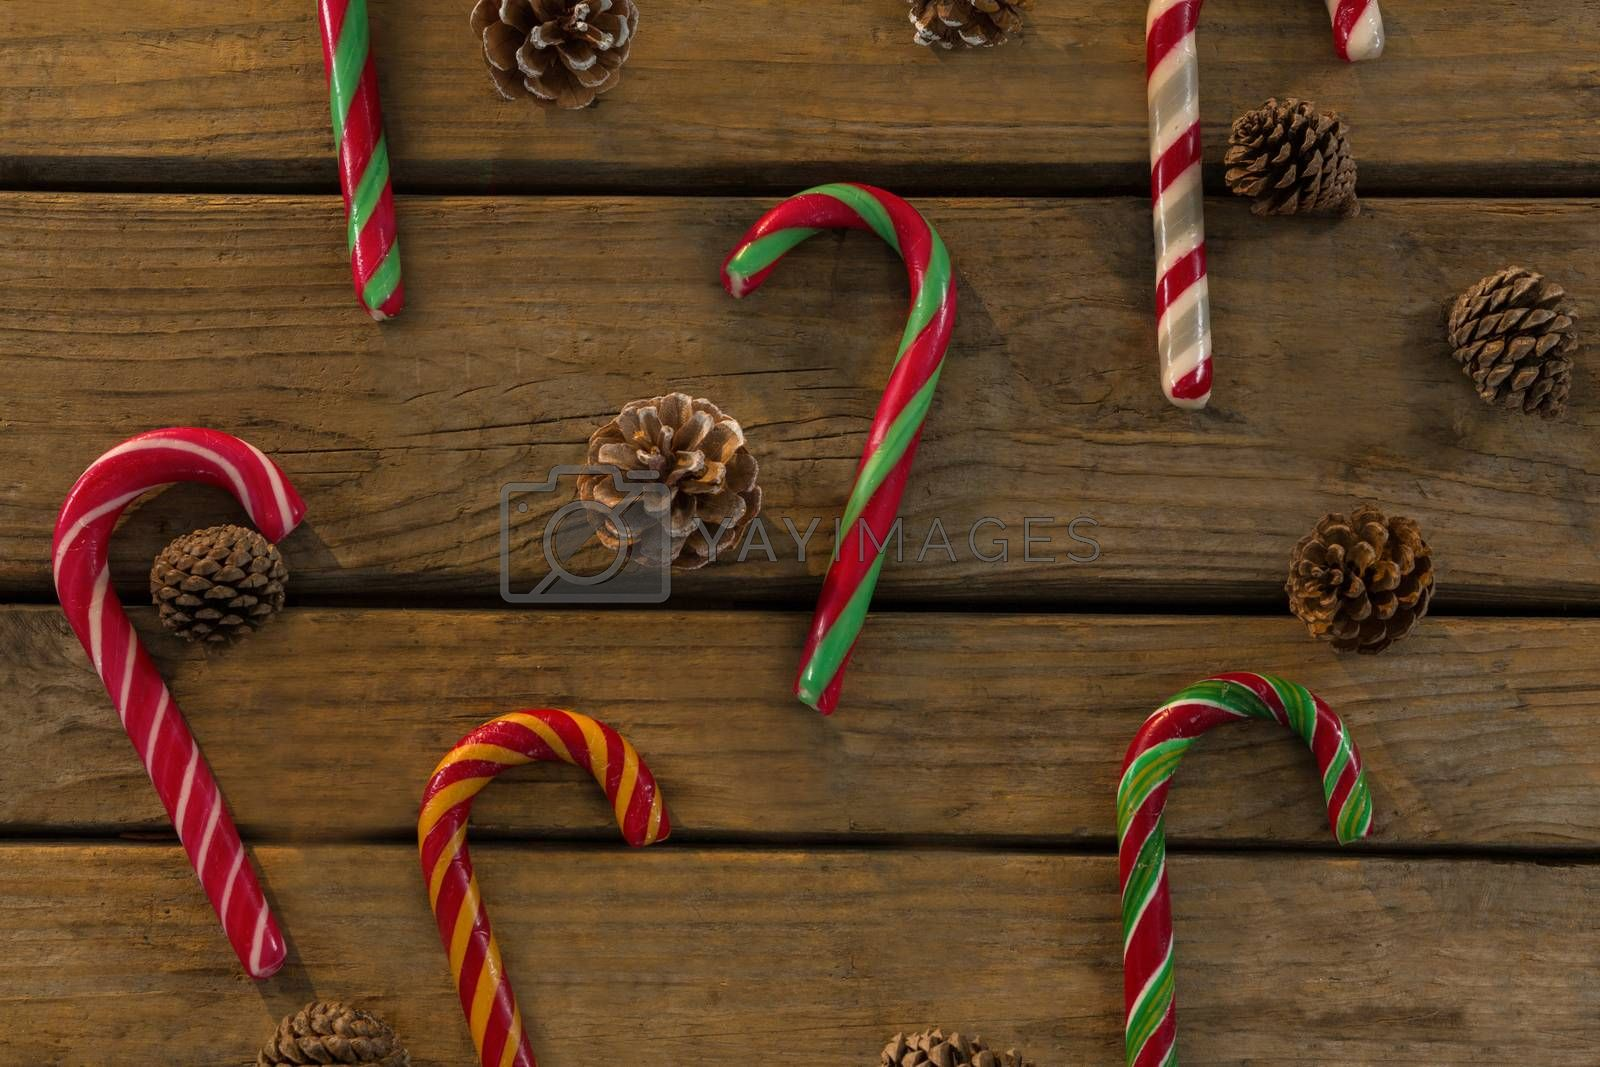 Overhead view of candy canes and pine cones on table by Wavebreakmedia